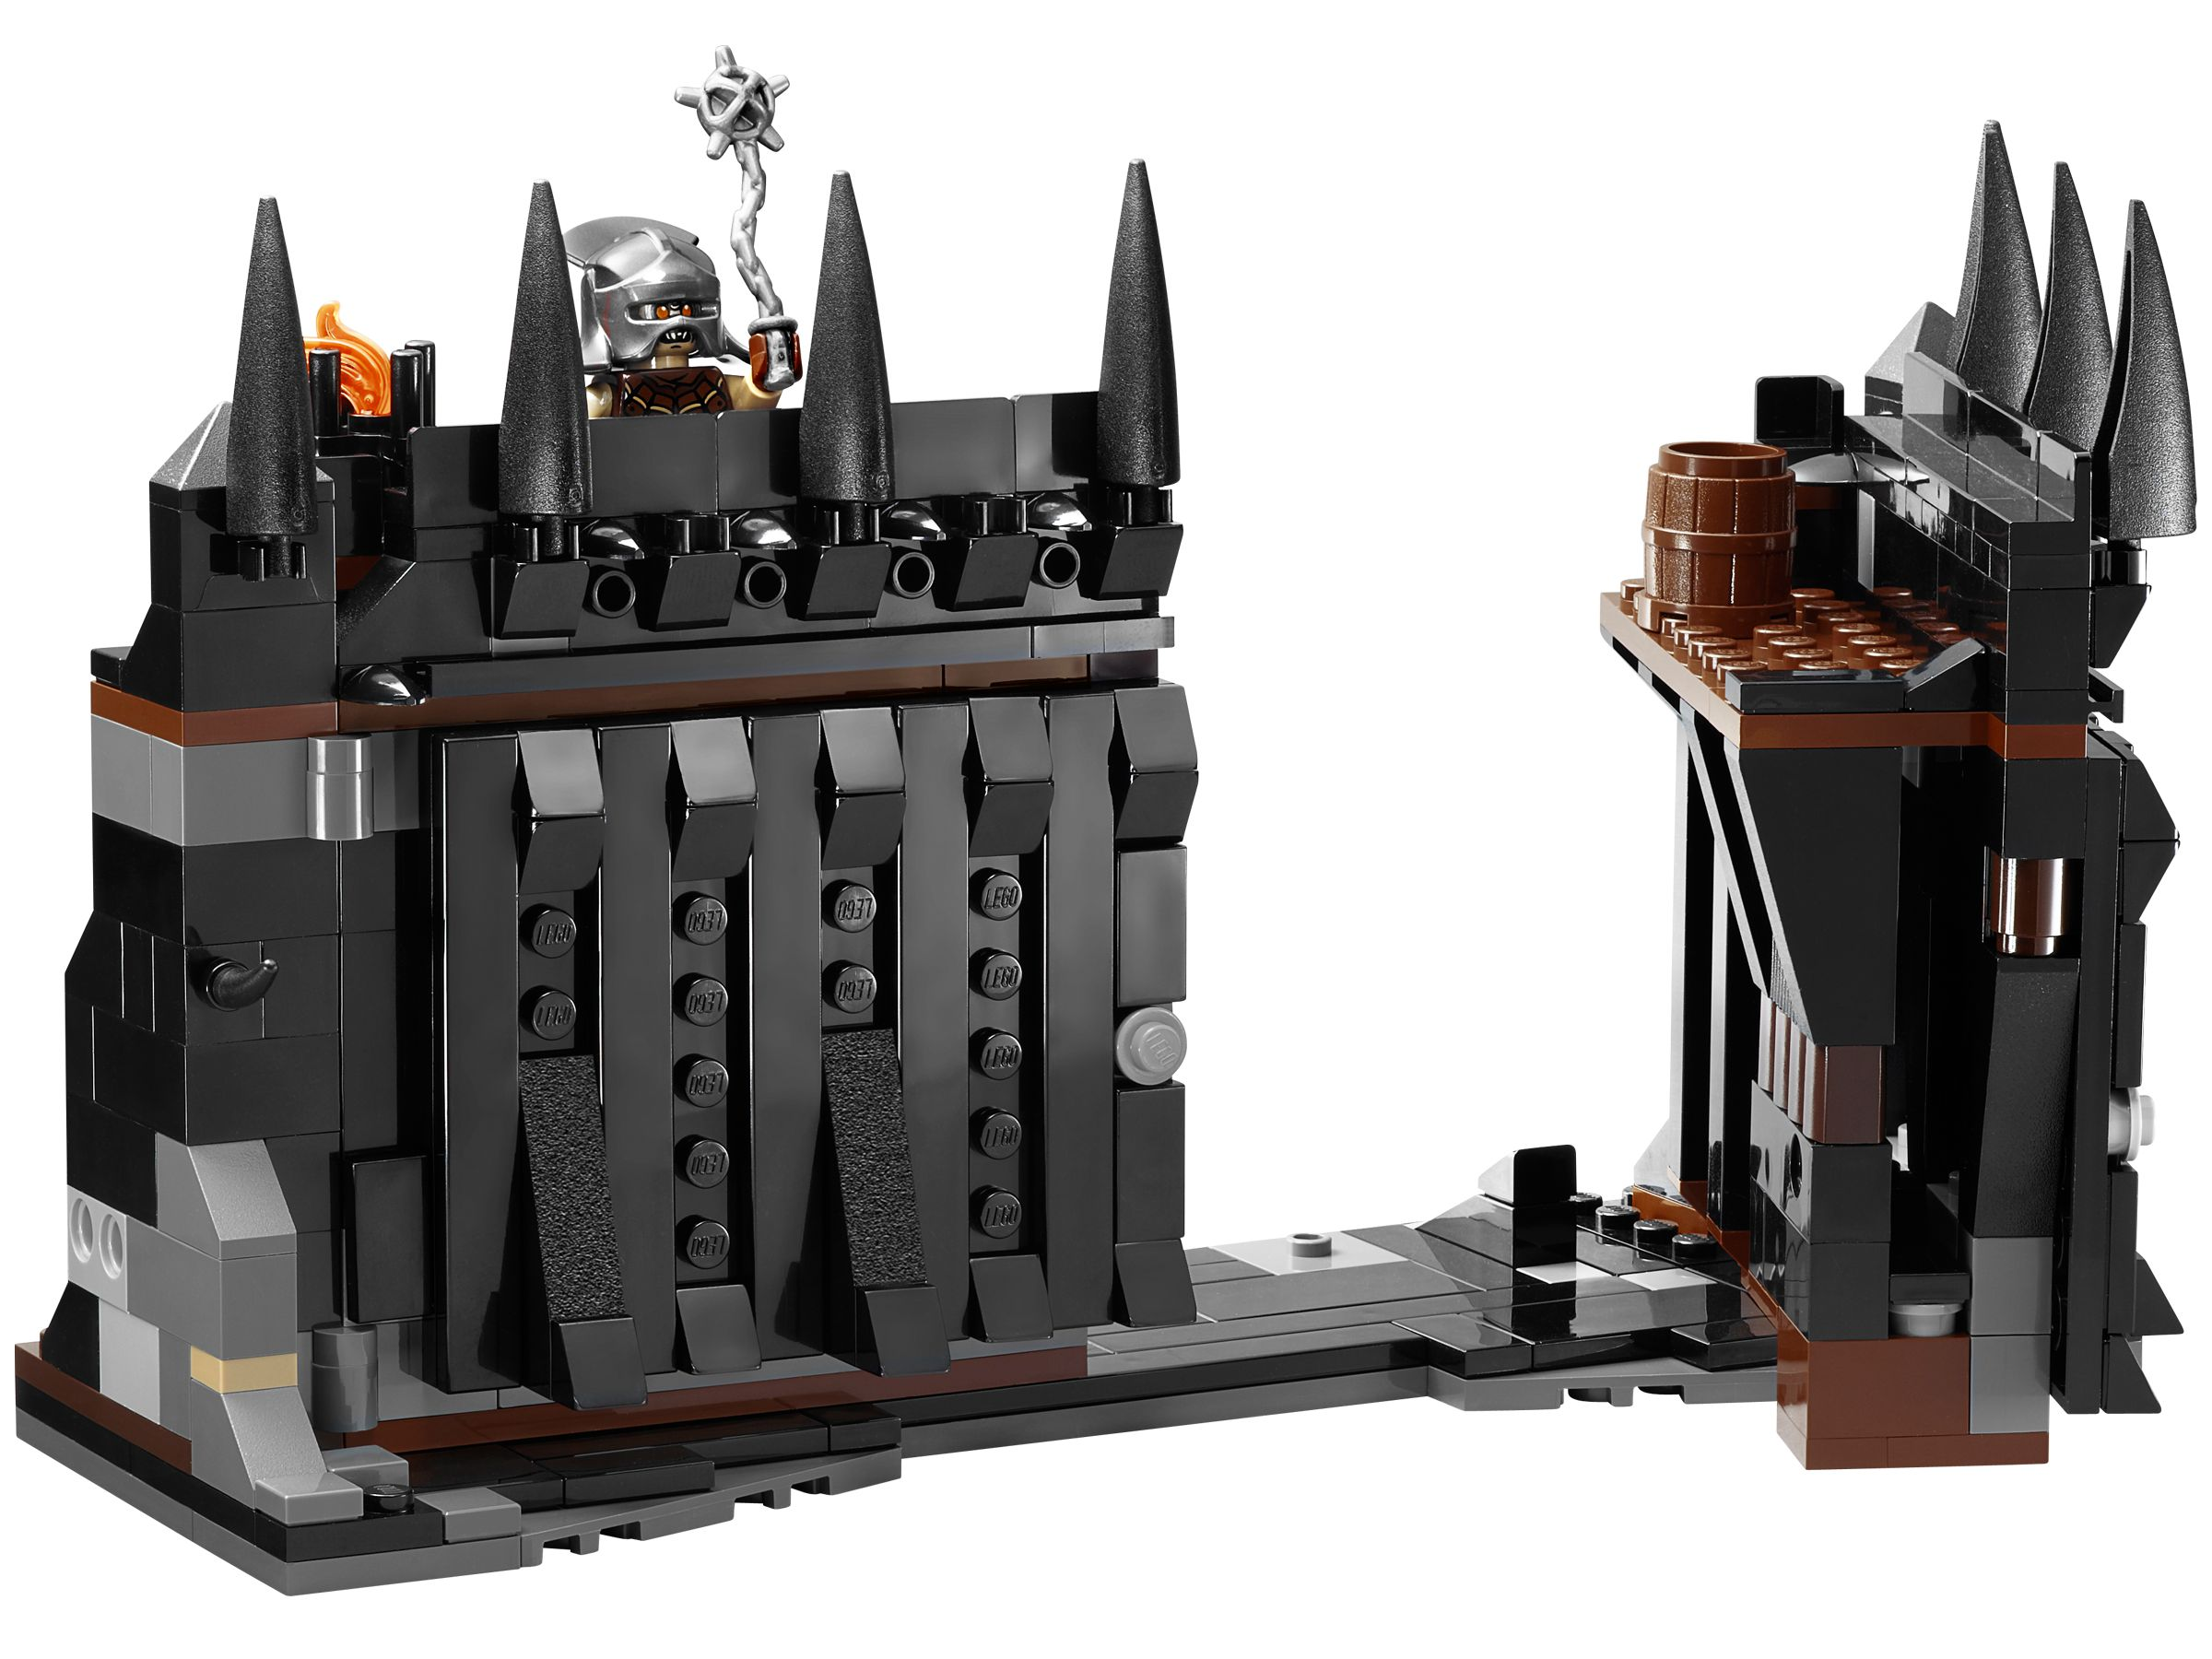 LEGO Lord of the Rings 79007 Die Schlacht am Schwarzen Tor LEGO_79007_alt7.jpg